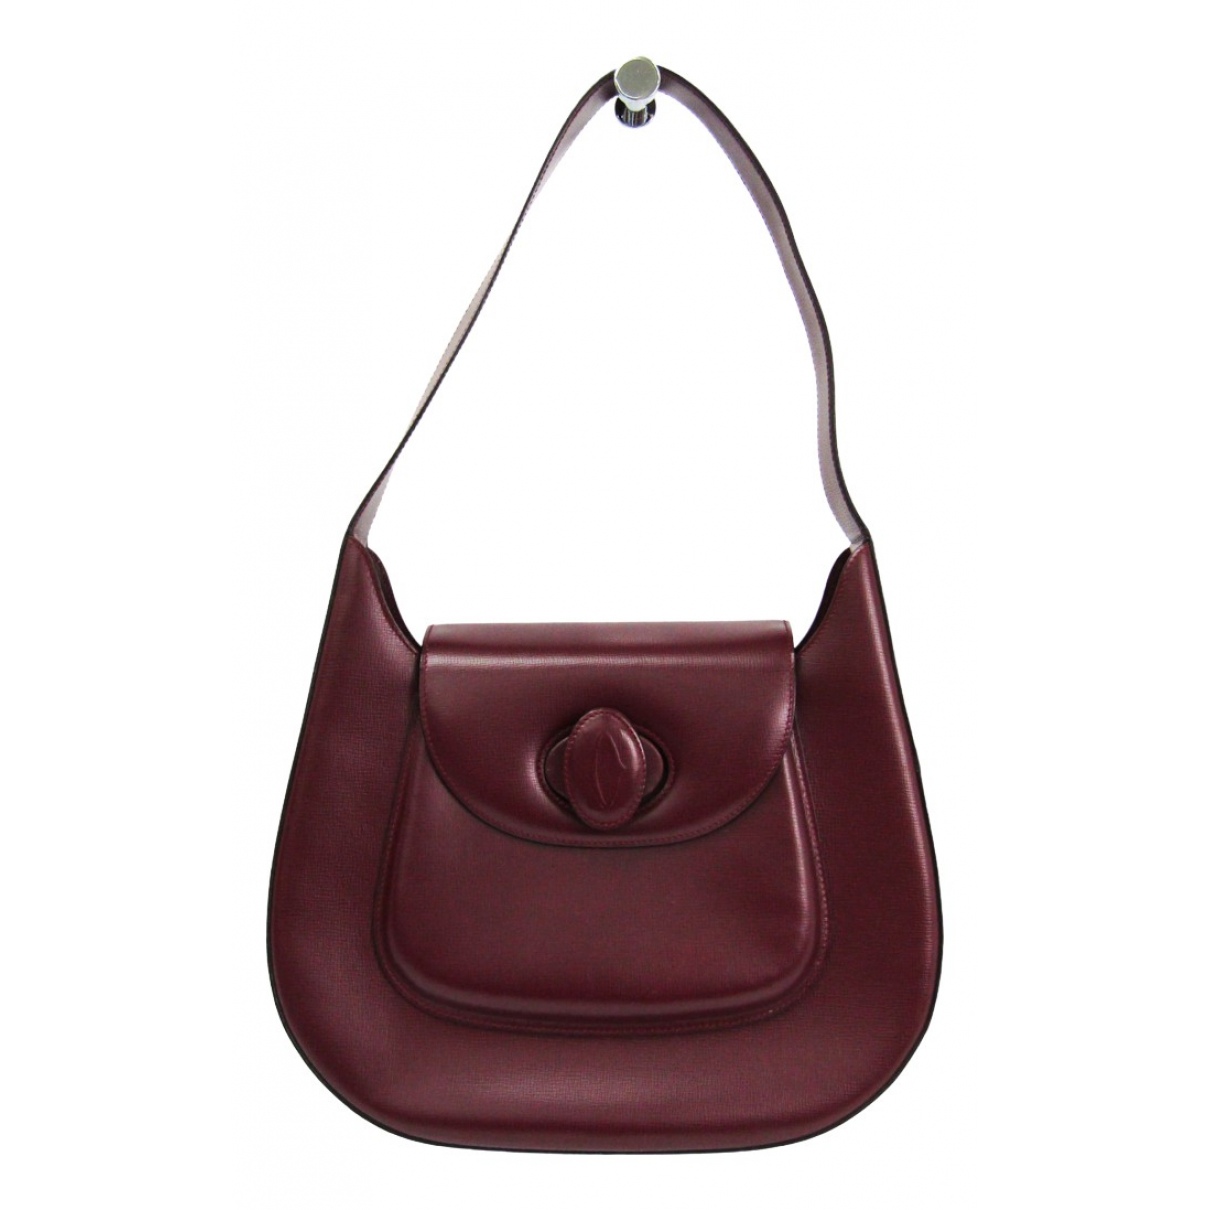 Cartier \N Handtasche in  Bordeauxrot Leder